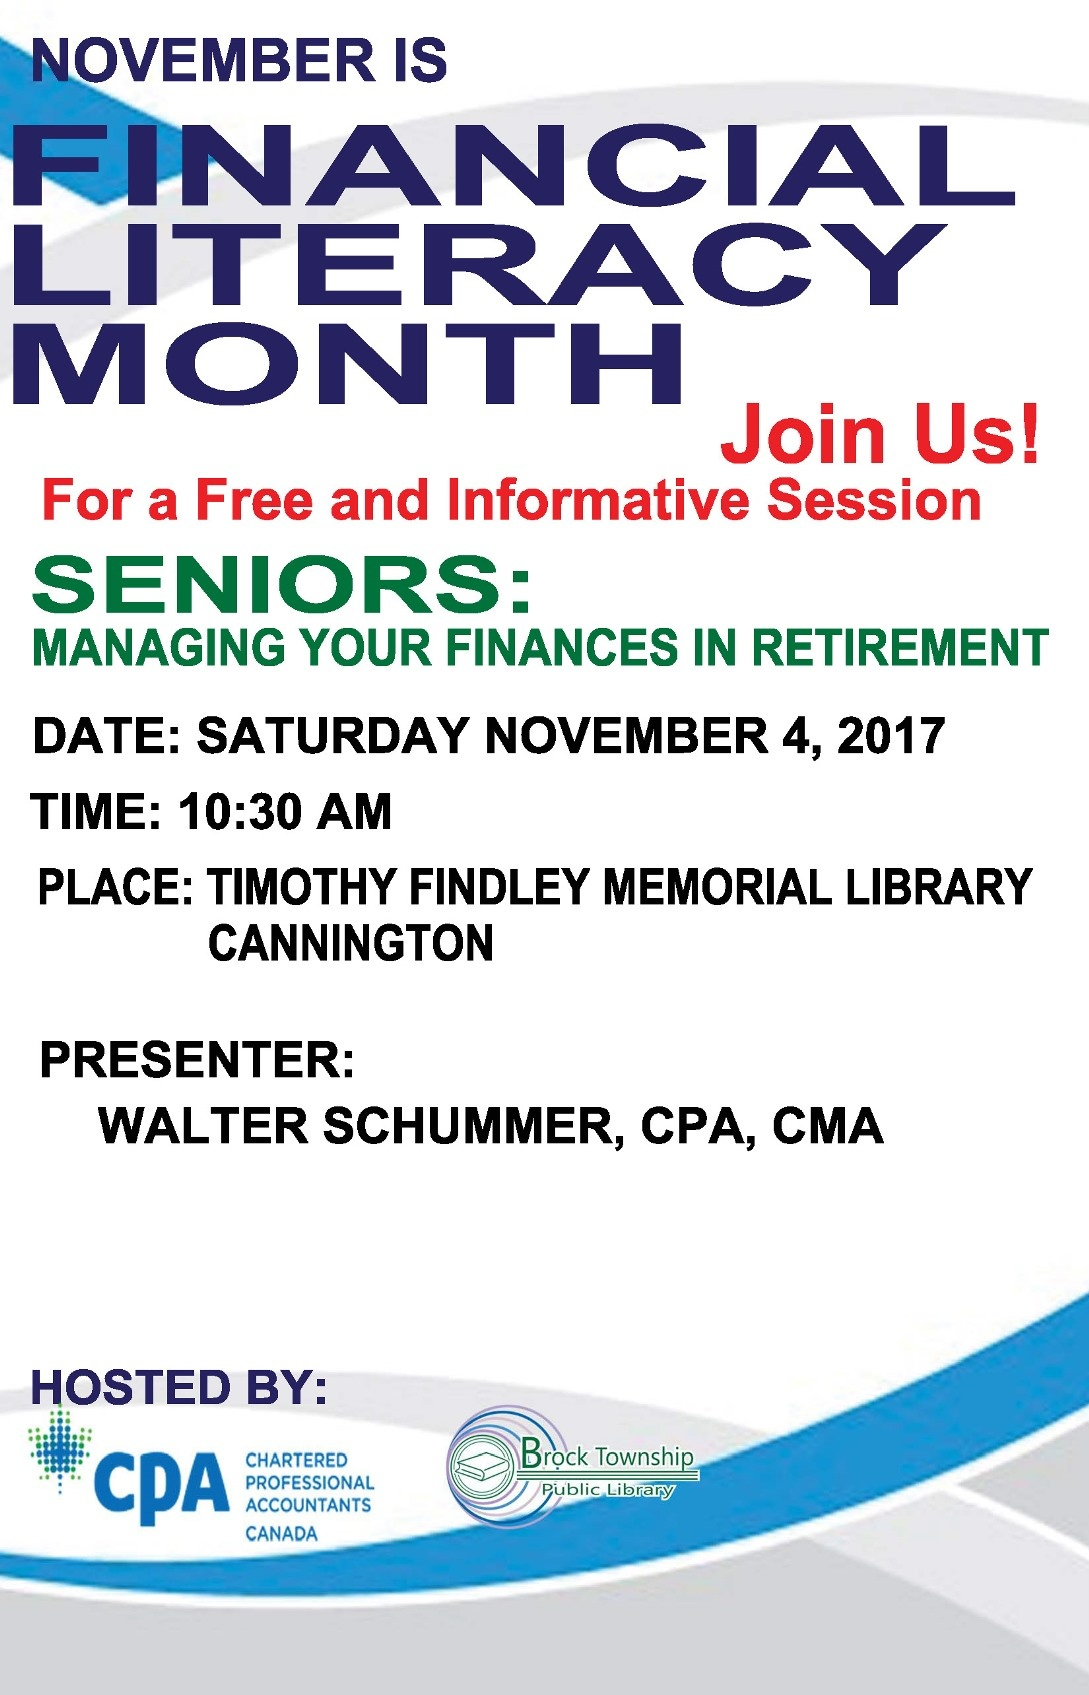 November is Financial Literacy Month!